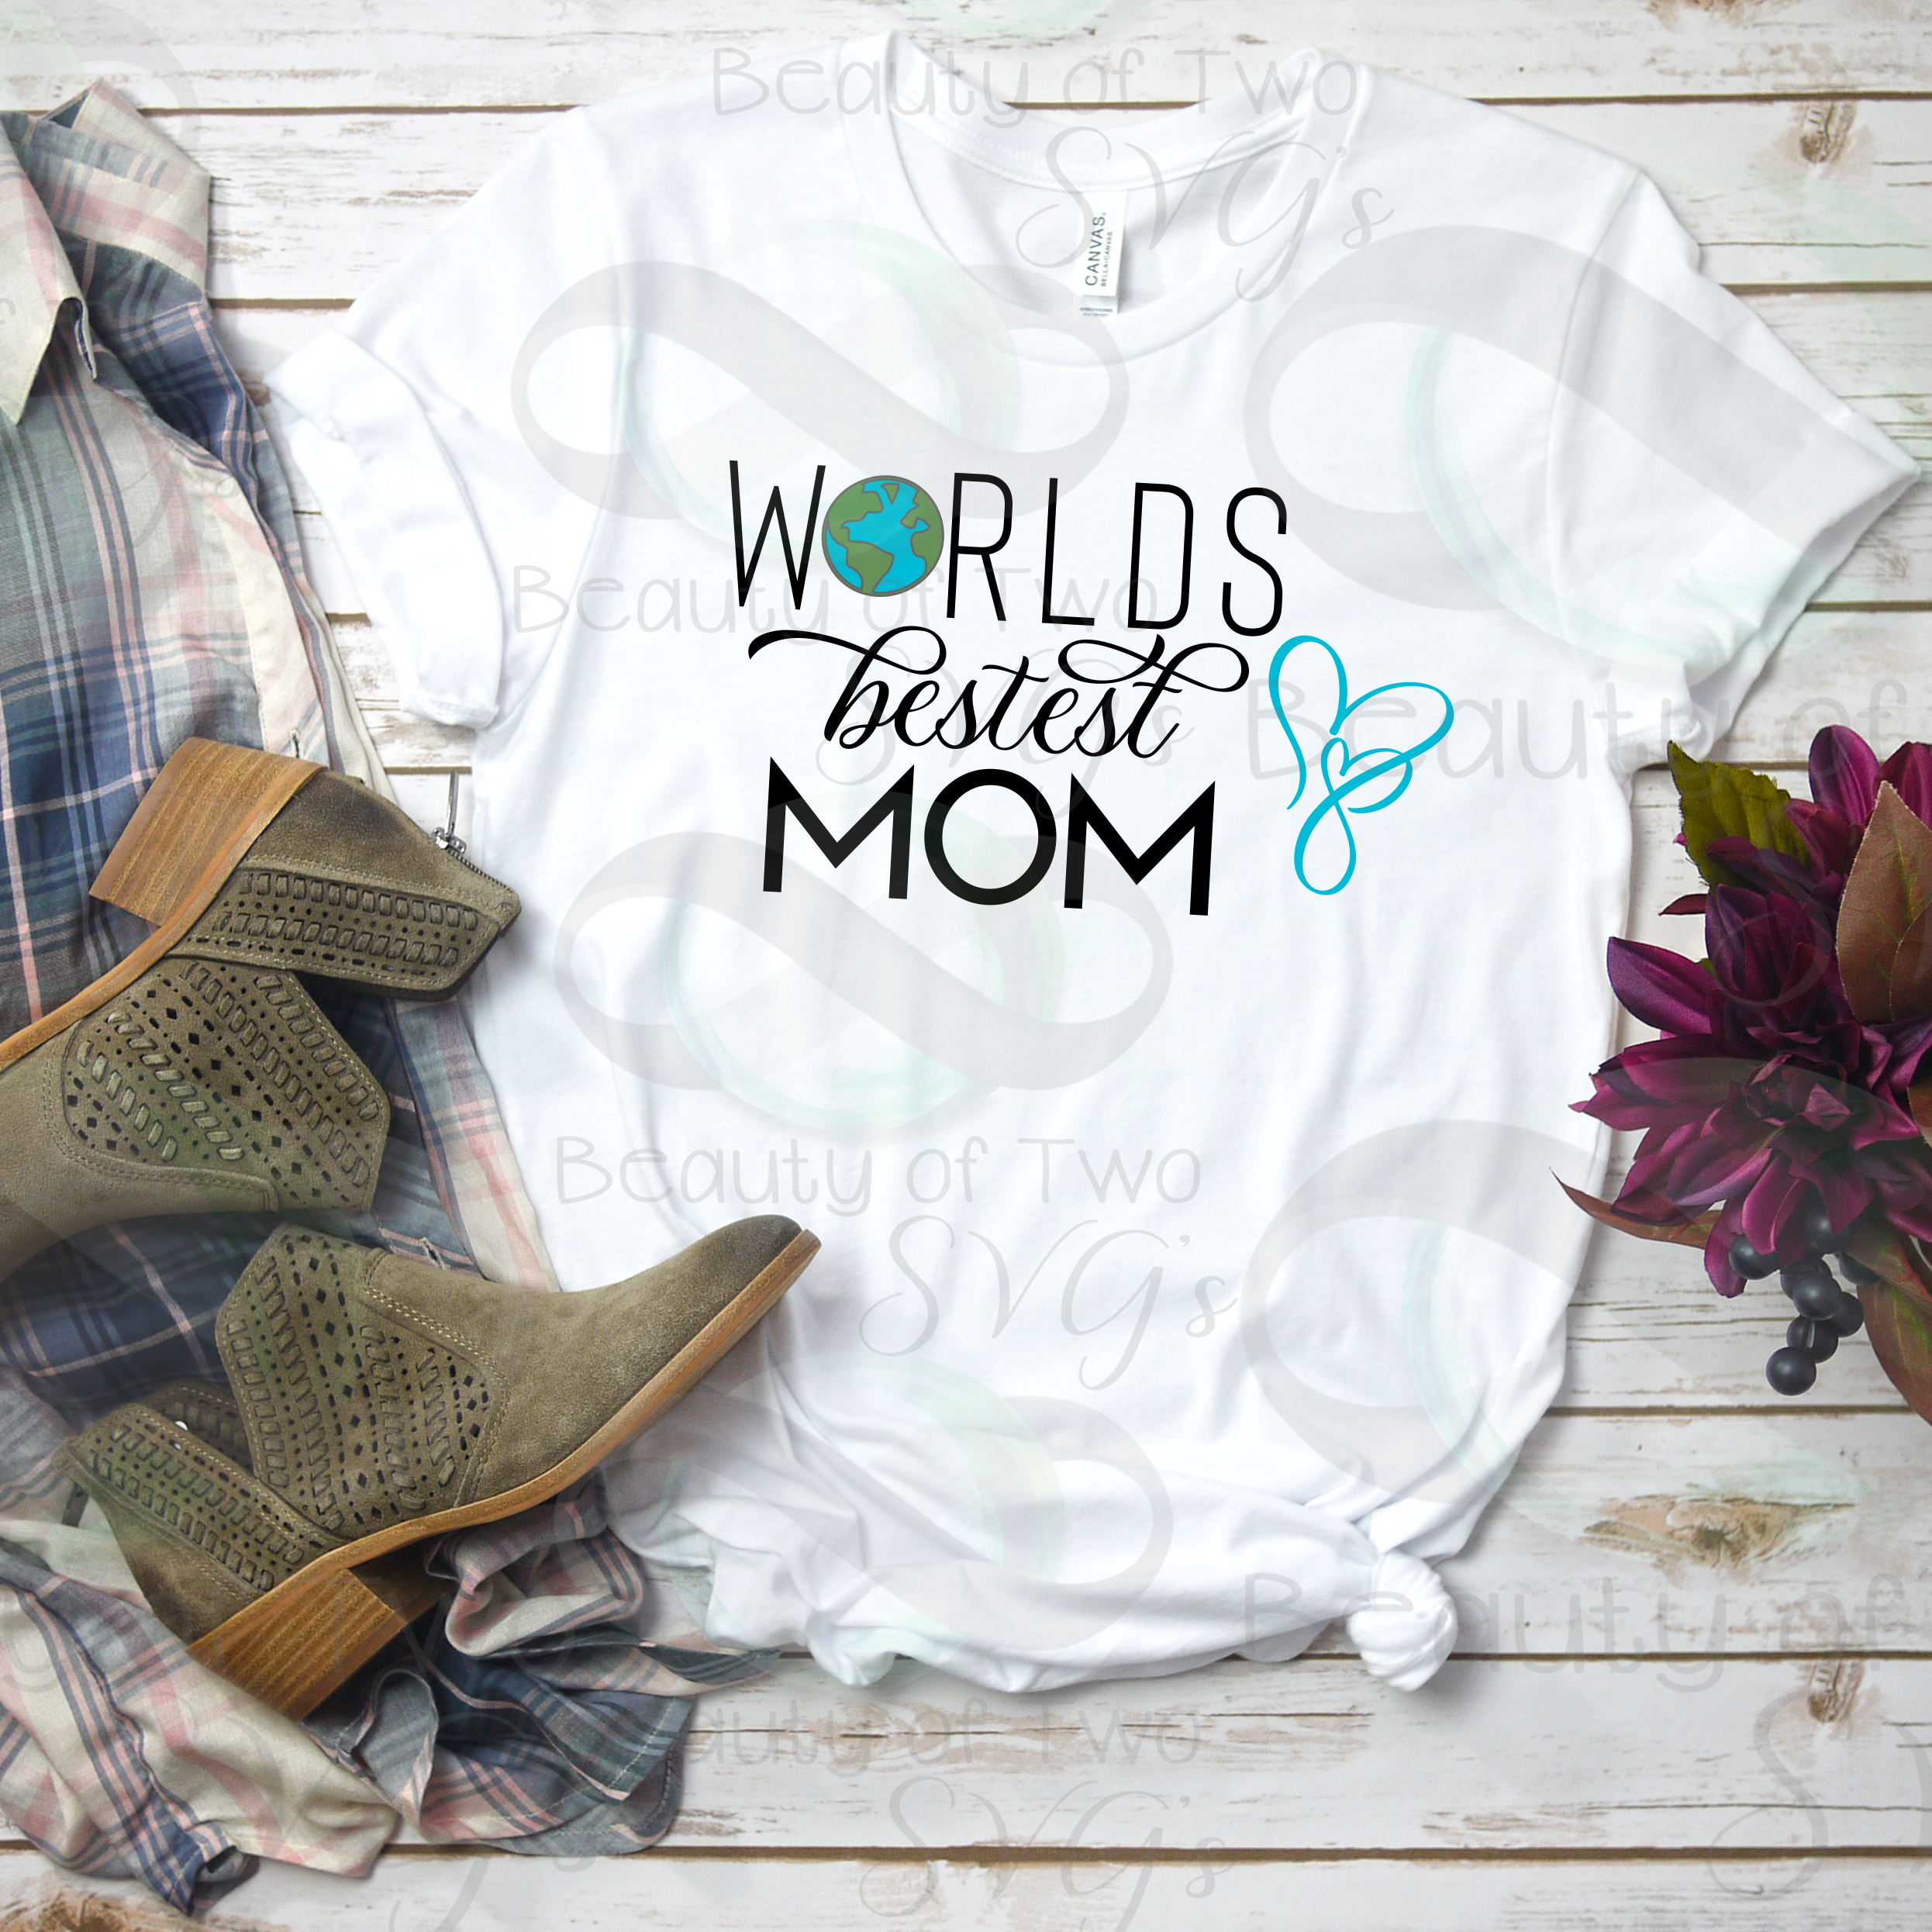 Mothers Day svg & png, Best Mom svg, Worlds Best Mom svg, example image 4